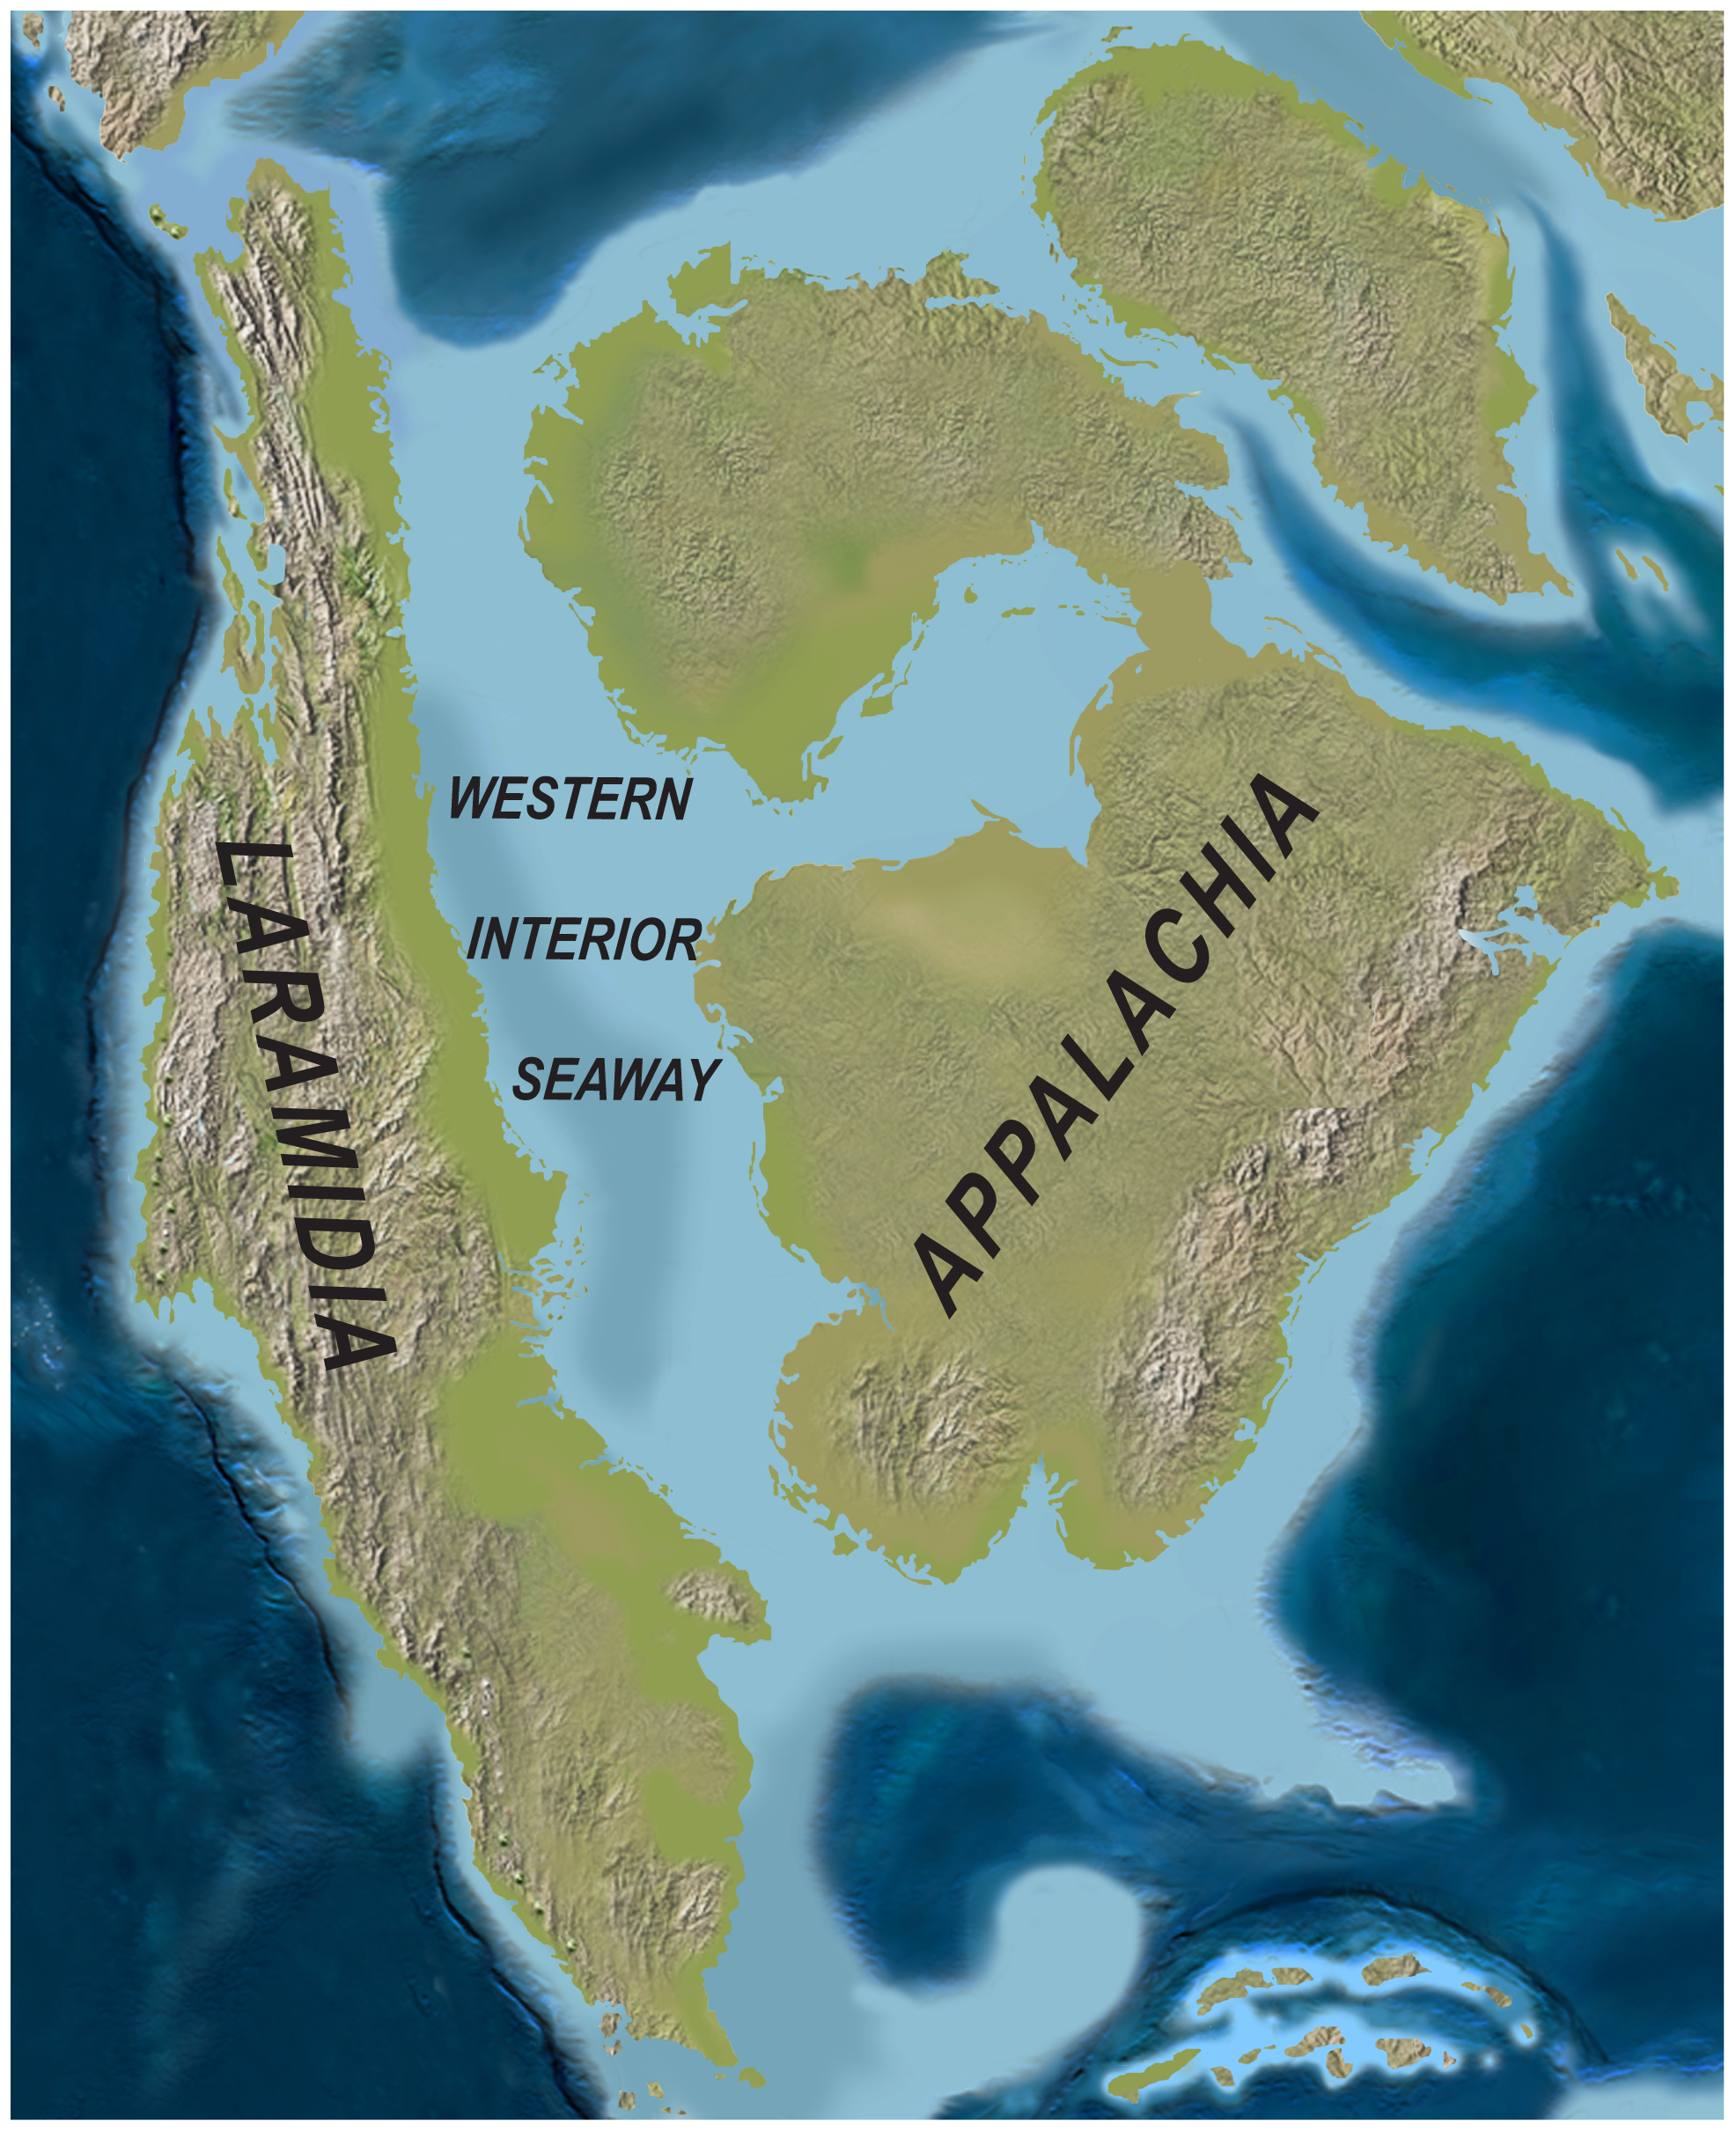 Paleogeography of North America during the late Campanian Stage of the Late Cretaceous (~75 Million years ago). Image credit:  Sampson, Scott D., et al. via PLoSone and Wikimedia Commons.